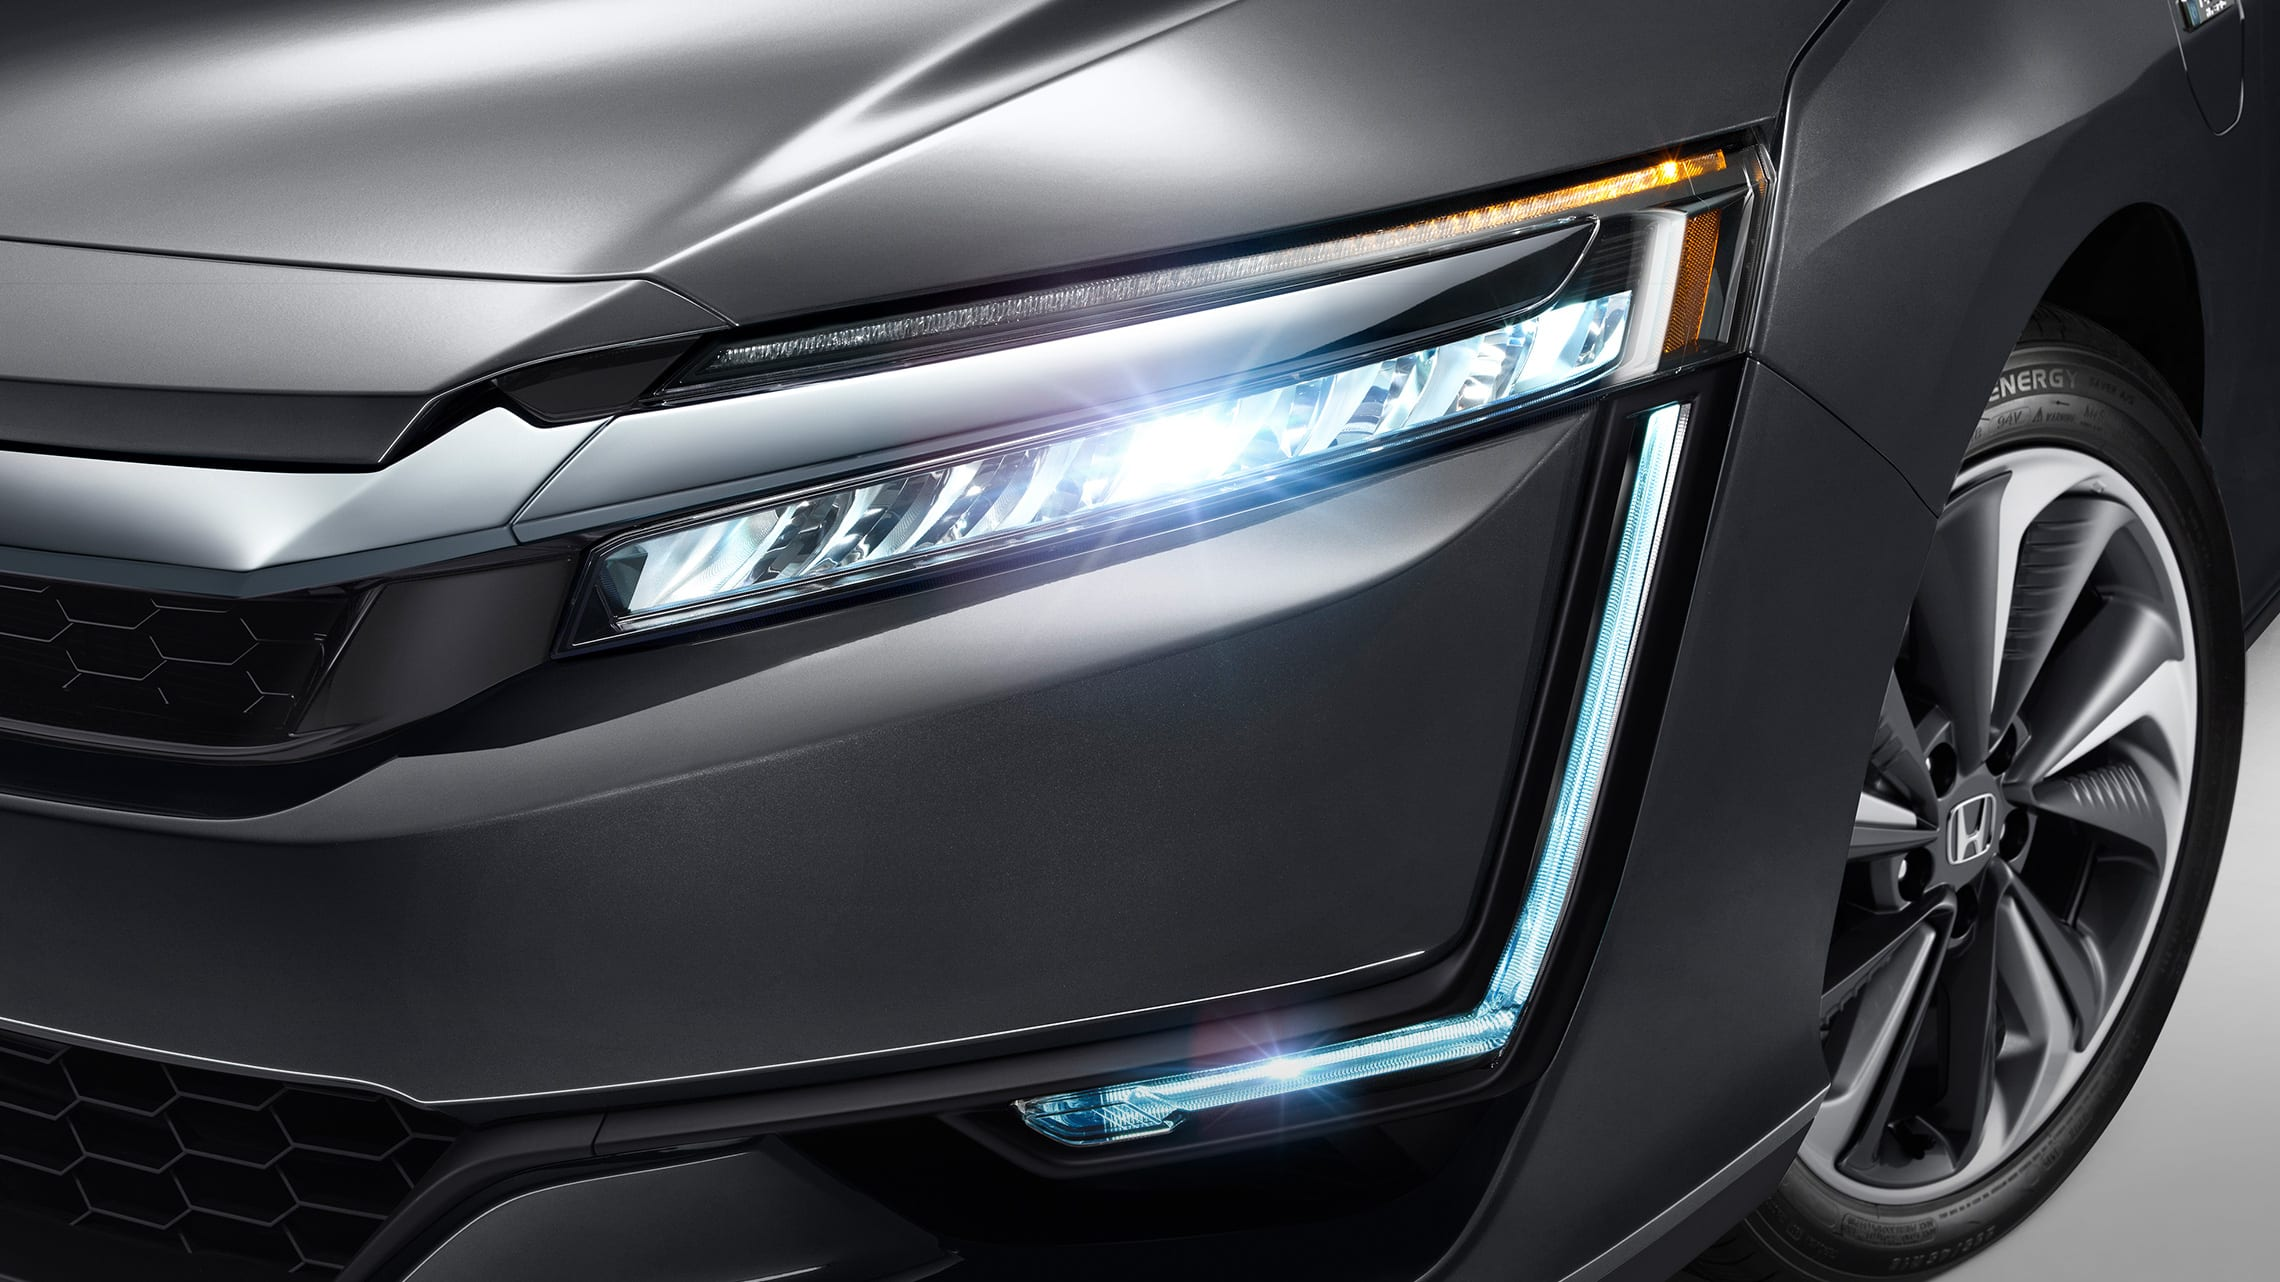 Detalle de las luces delanteras de LED y DRL del Clarity Plug-In Hybrid 2021 en Modern Steel Metallic.